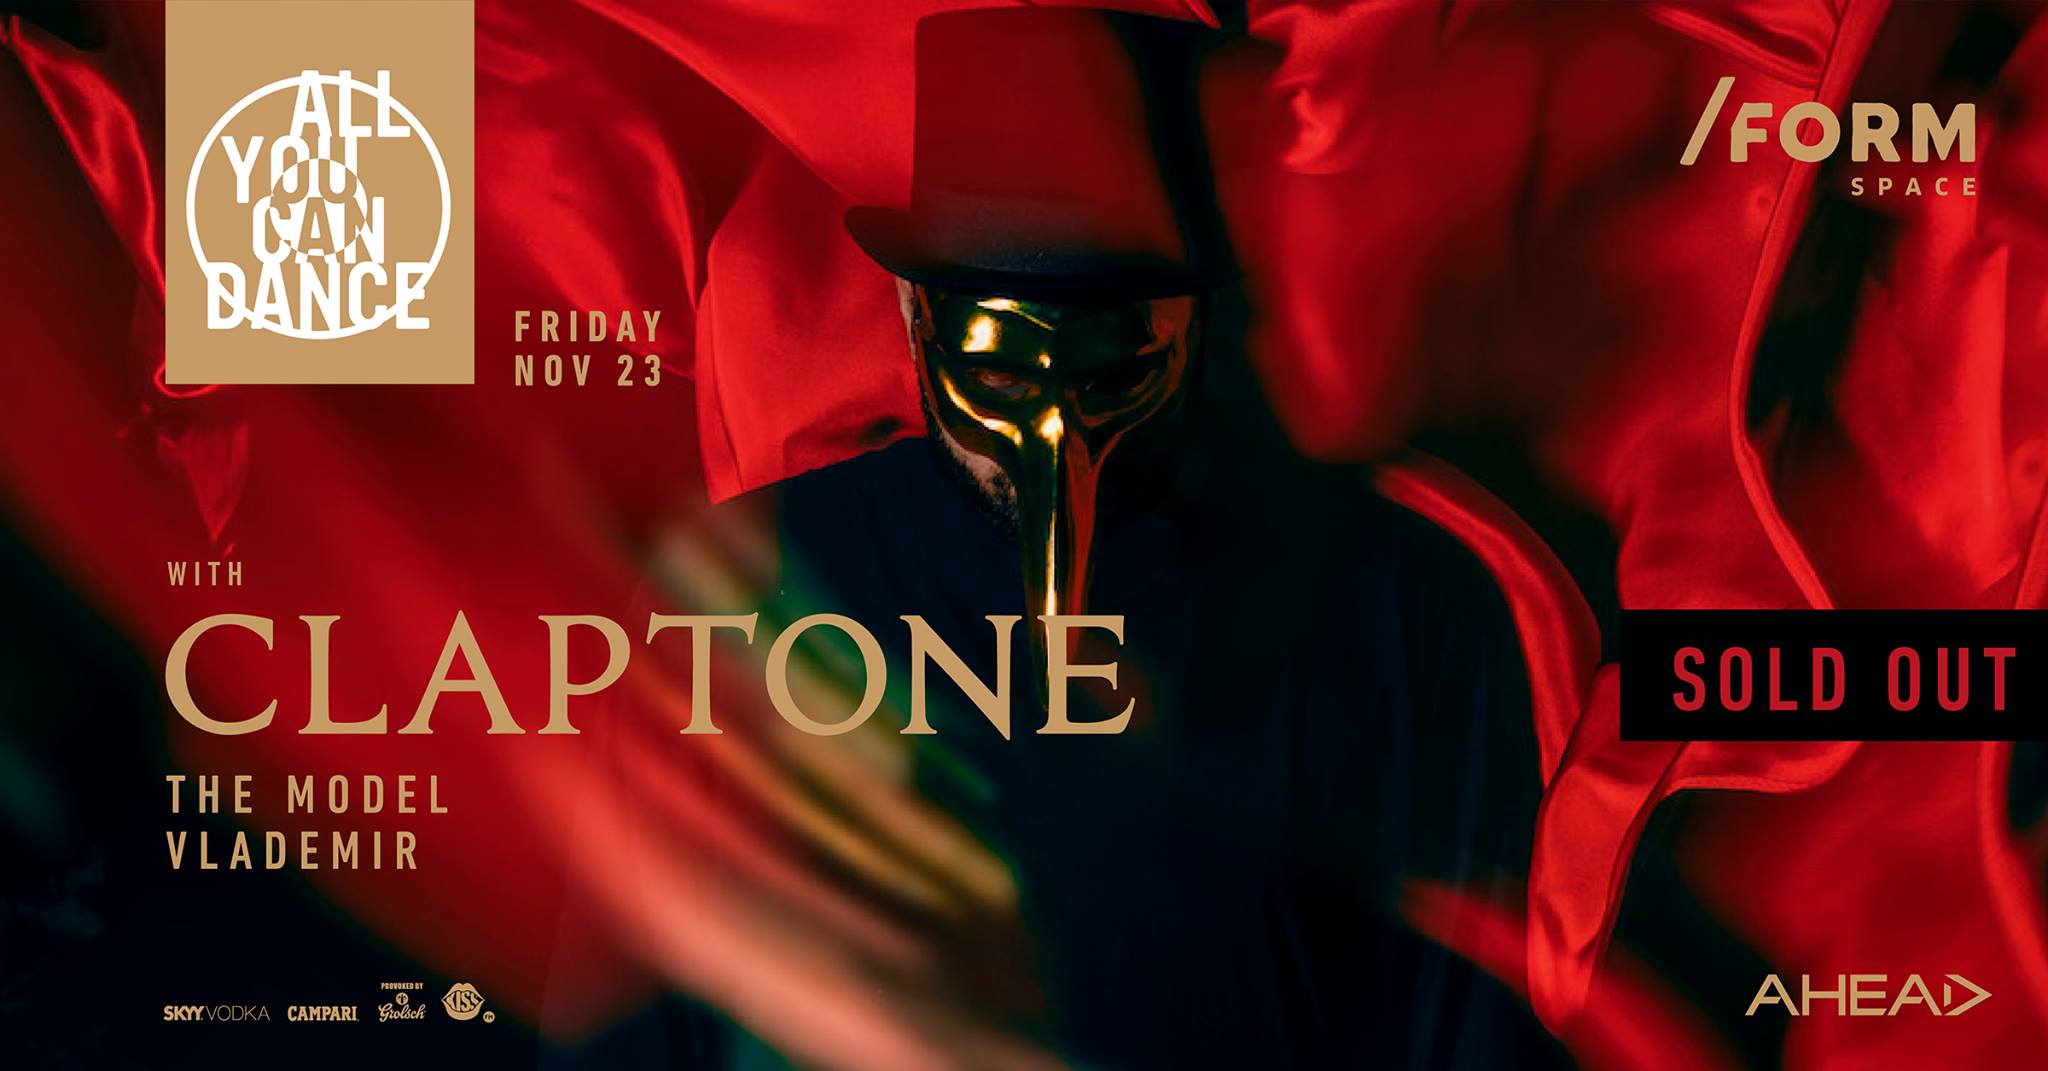 Claptone | All You Can Dance at /FORM SPACE